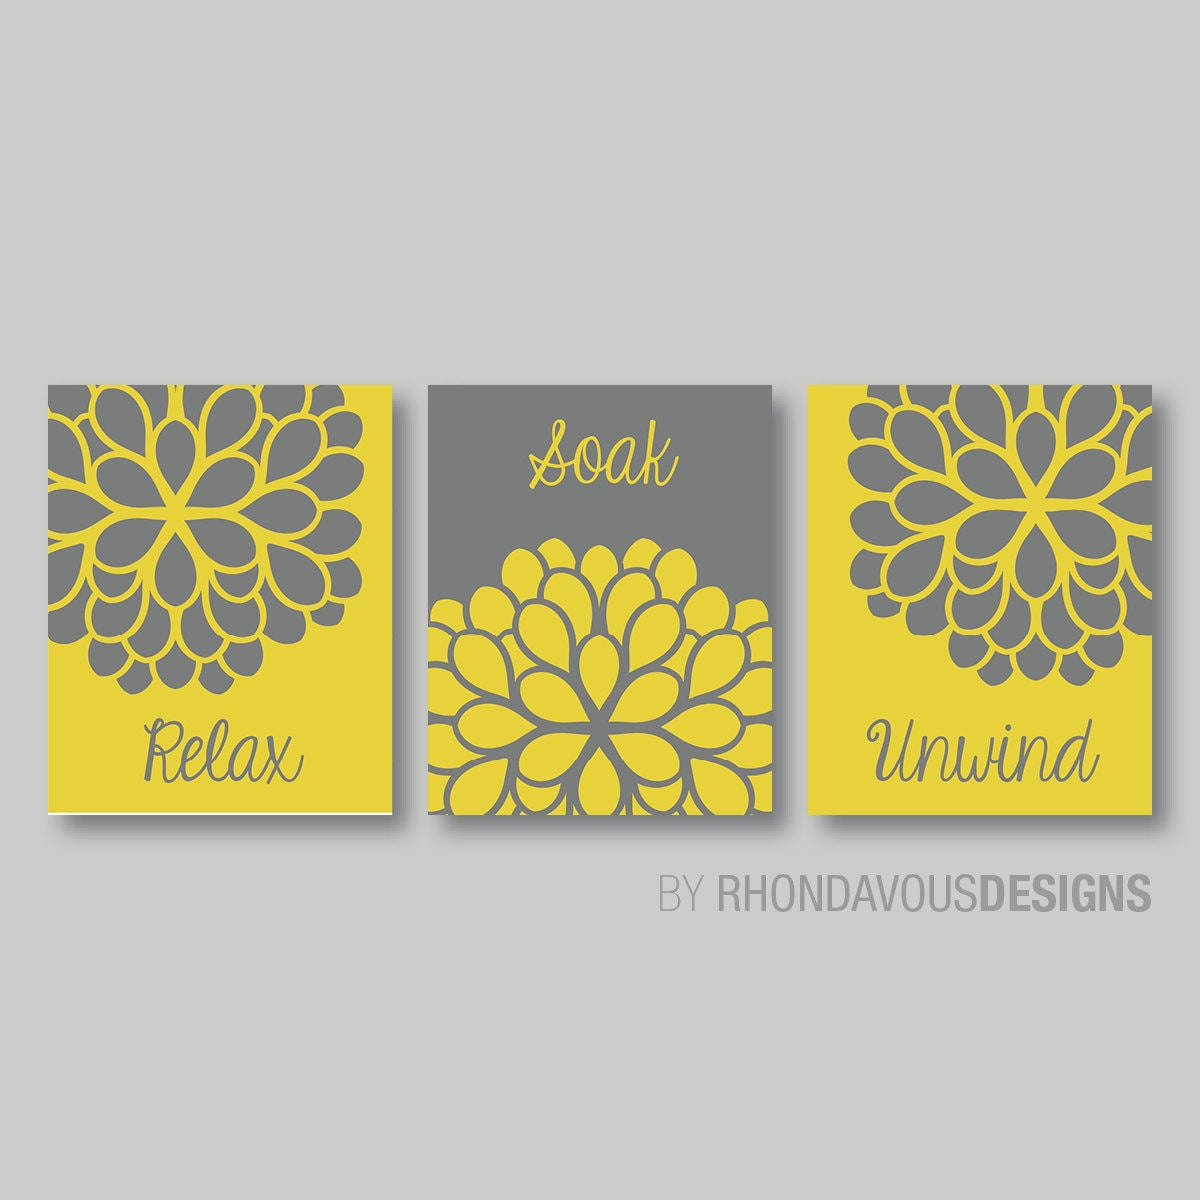 Relax Wall Art. Relax Soak Unwind. Relax Decor. Bathroom Art. Wall ...